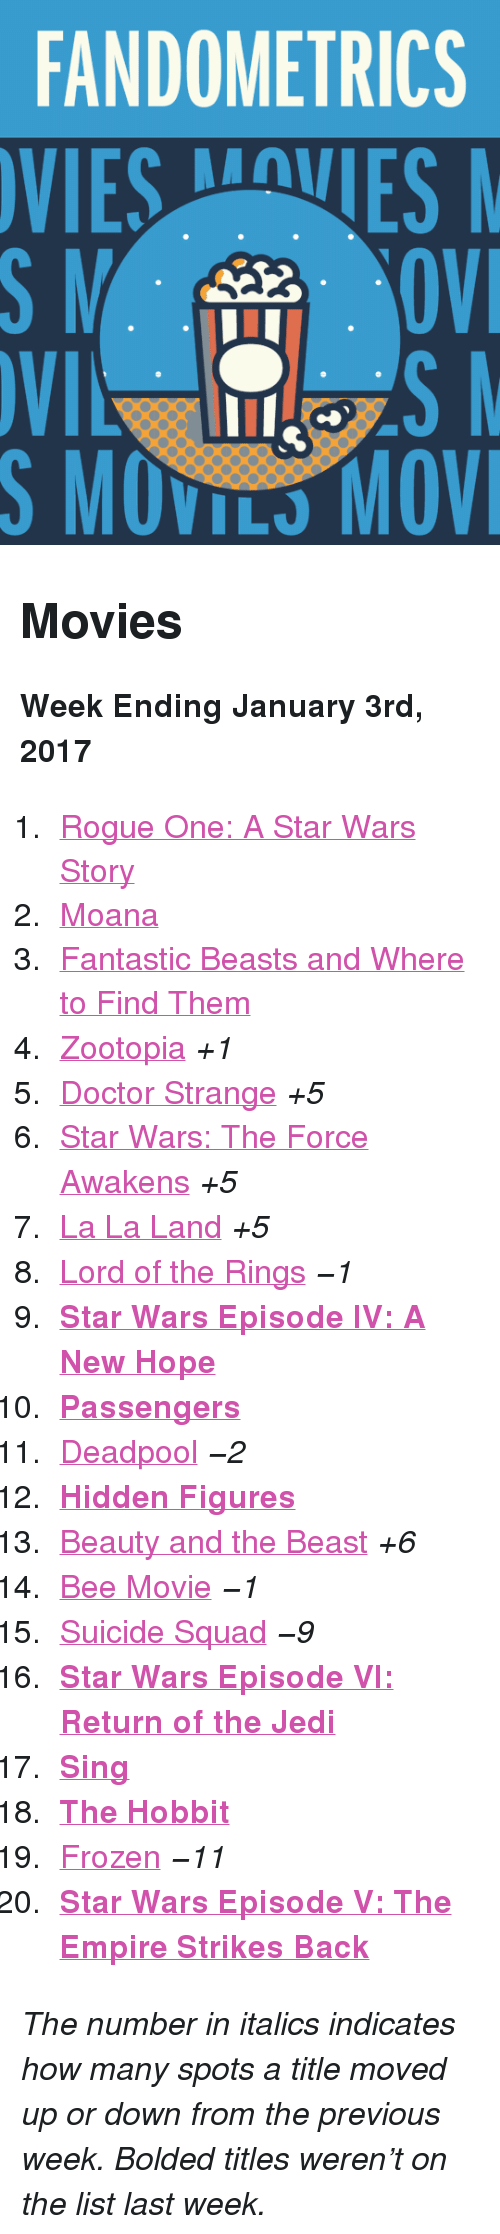 "Star Wars: The Force Awakens: FANDOMETRICS  VIESVES  S MOVILS MOV <h2>Movies</h2><p><b>Week Ending January 3rd, 2017</b></p><ol><li><a href=""http://www.tumblr.com/search/rogue%20one"">Rogue One: A Star Wars Story</a></li>  <li><a href=""http://www.tumblr.com/search/moana"">Moana</a></li>  <li><a href=""http://www.tumblr.com/search/fantastic%20beasts%20and%20where%20to%20find%20them"">Fantastic Beasts and Where to Find Them</a></li>  <li><a href=""http://www.tumblr.com/search/zootopia"">Zootopia</a> <i>+1</i></li>  <li><a href=""http://www.tumblr.com/search/doctor%20strange"">Doctor Strange</a> <i>+5</i></li>  <li><a href=""http://www.tumblr.com/search/the%20force%20awakens"">Star Wars: The Force Awakens</a> <i>+5</i></li>  <li><a href=""http://www.tumblr.com/search/la%20la%20land"">La La Land</a> <i>+5</i></li>  <li><a href=""http://www.tumblr.com/search/lotr"">Lord of the Rings</a> <i>−1</i></li>  <li><a href=""http://www.tumblr.com/search/a%20new%20hope""><b>Star Wars Episode IV: A New Hope</b></a></li>  <li><a href=""http://www.tumblr.com/search/passengers""><b>Passengers</b></a></li>  <li><a href=""http://www.tumblr.com/search/deadpool"">Deadpool</a> <i>−2</i></li>  <li><a href=""http://www.tumblr.com/search/hidden%20figures""><b>Hidden Figures</b></a></li>  <li><a href=""http://www.tumblr.com/search/beauty%20and%20the%20beast"">Beauty and the Beast</a> <i>+6</i></li>  <li><a href=""http://www.tumblr.com/search/bee%20movie"">Bee Movie</a> <i>−1</i></li>  <li><a href=""http://www.tumblr.com/search/suicide%20squad"">Suicide Squad</a> <i>−9</i></li>  <li><a href=""http://www.tumblr.com/search/return%20of%20the%20jedi""><b>Star Wars Episode VI: Return of the Jedi</b></a></li>  <li><a href=""http://www.tumblr.com/search/sing%20movie""><b>Sing</b></a></li>  <li><a href=""http://www.tumblr.com/search/the%20hobbit""><b>The Hobbit</b></a></li>  <li><a href=""http://www.tumblr.com/search/frozen"">Frozen</a> <i>−11</i></li>  <li><a href=""http://www.tumblr.com/search/the%20empire%20strikes%20back""><b>Star Wars Episode V: The Empire Strikes Back</b></a></li></ol><p><i>The number in italics indicates how many spots a title moved up or down from the previous week. Bolded titles weren't on the list last week.</i></p>"